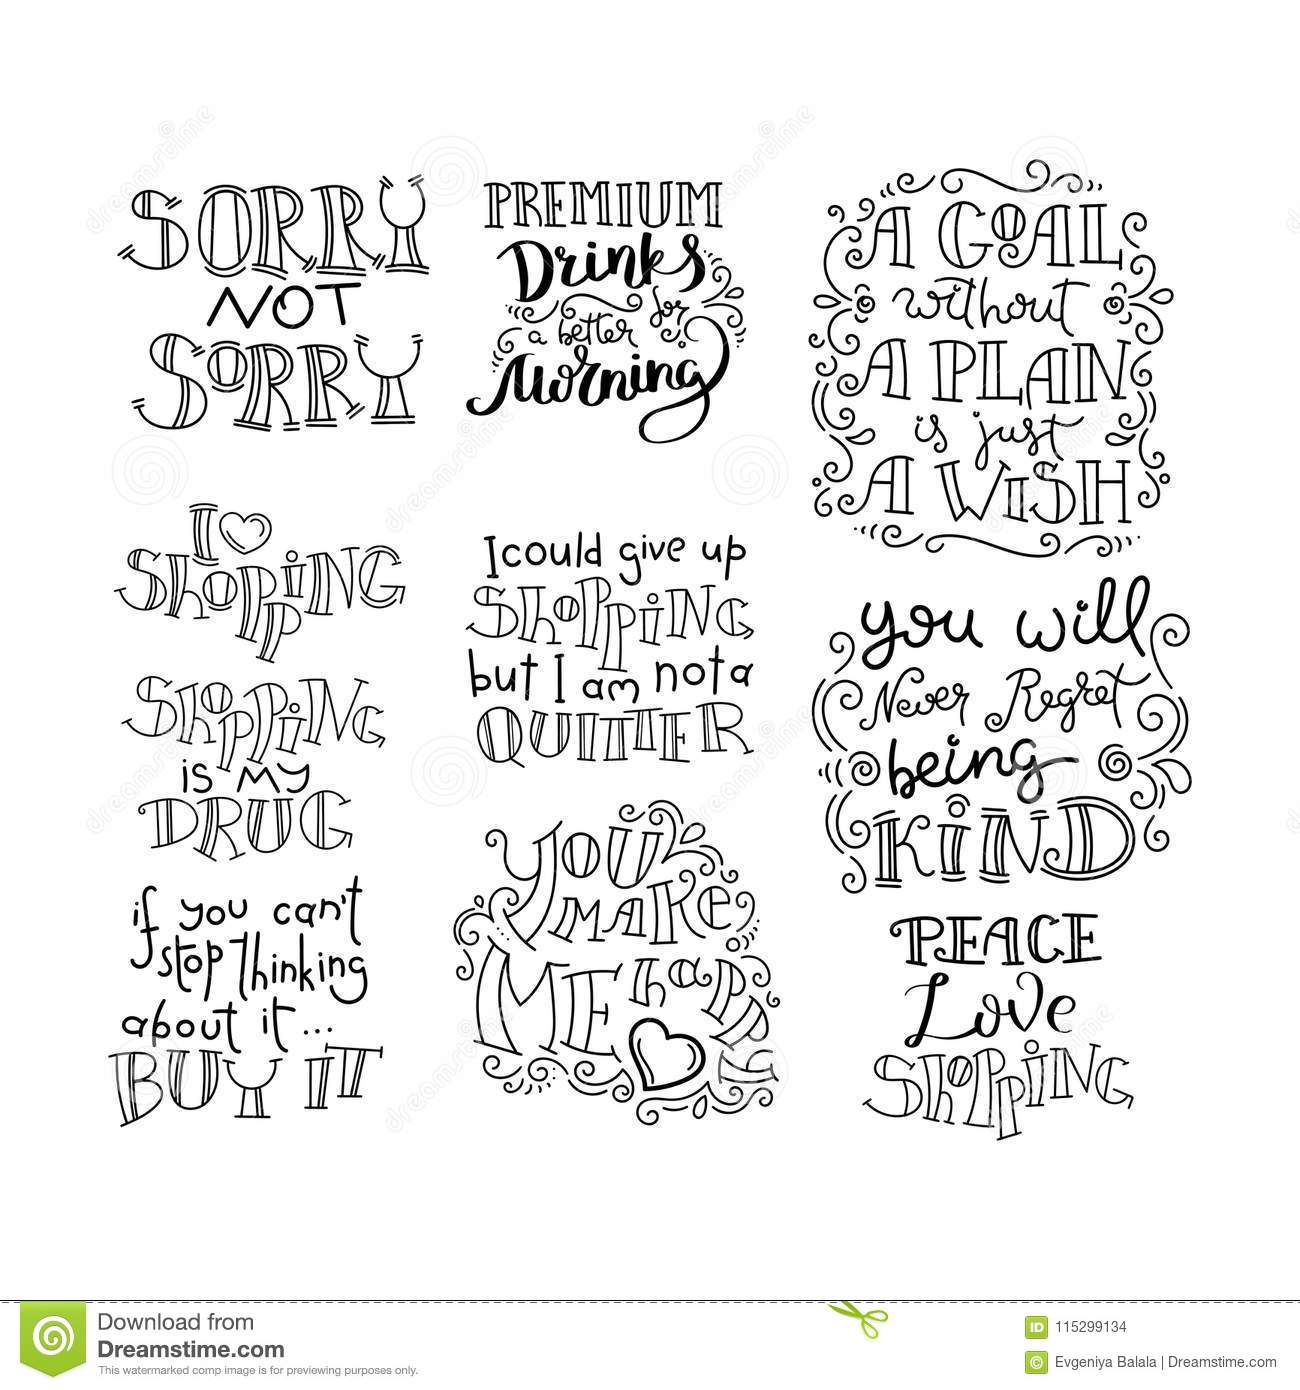 Quotes About Love And Life And Happiness. Hand Written ...